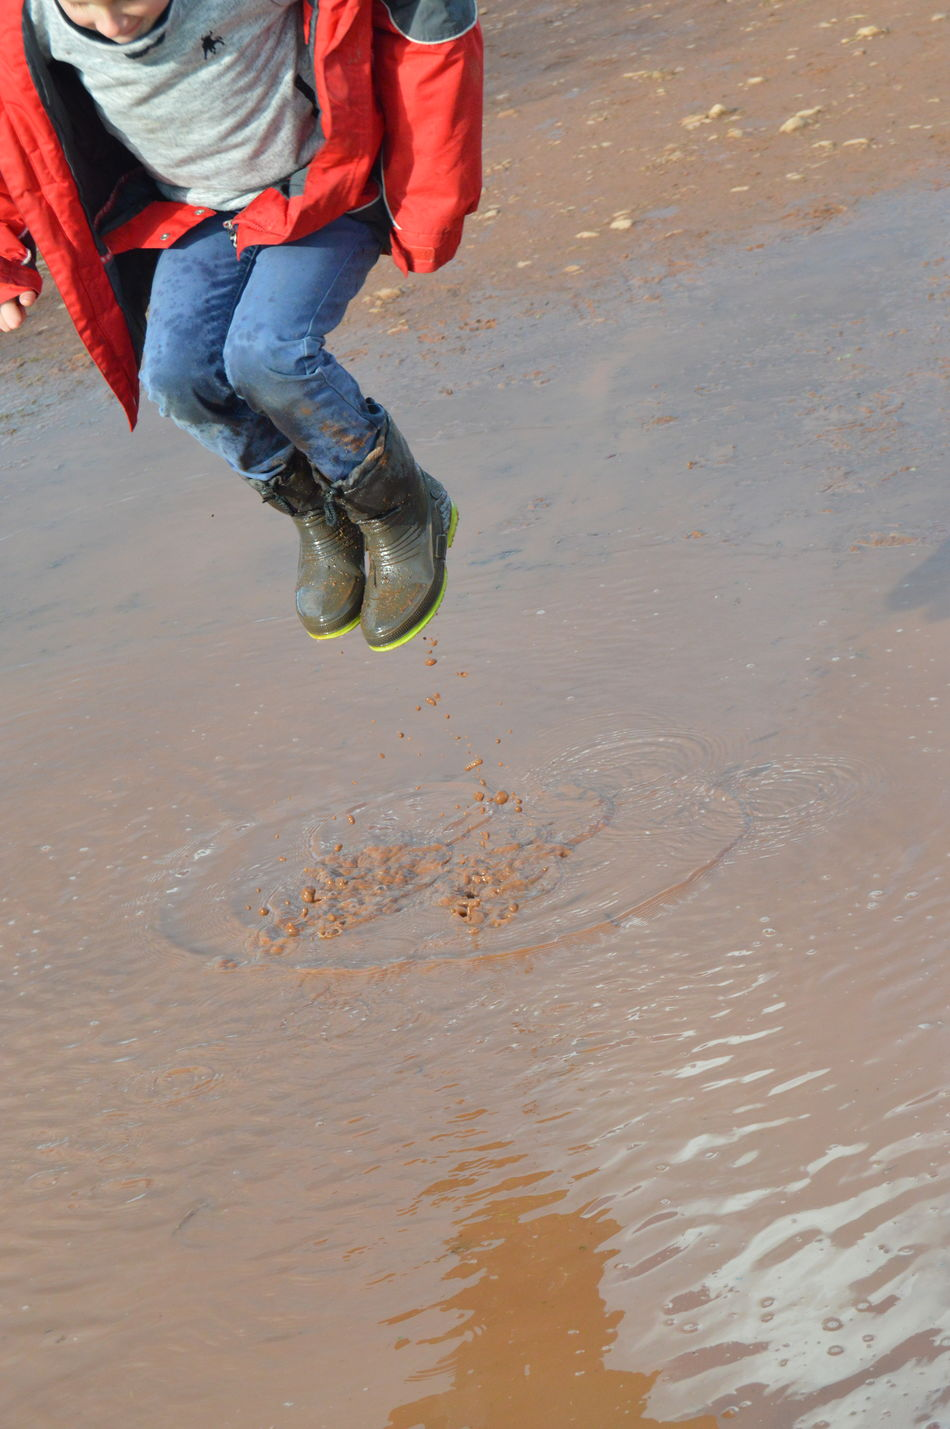 Showcase March A Walk On The Hills Family Puddle Muddy Puddles Jumping In Muddy Puddles Childhood Memories Kids Being Kids Water_collection Waterdrops Jumpshot Capturing Movement Capture The Moment Kids Having Fun No Edit/no Filter Splashing Water Jumping Shot